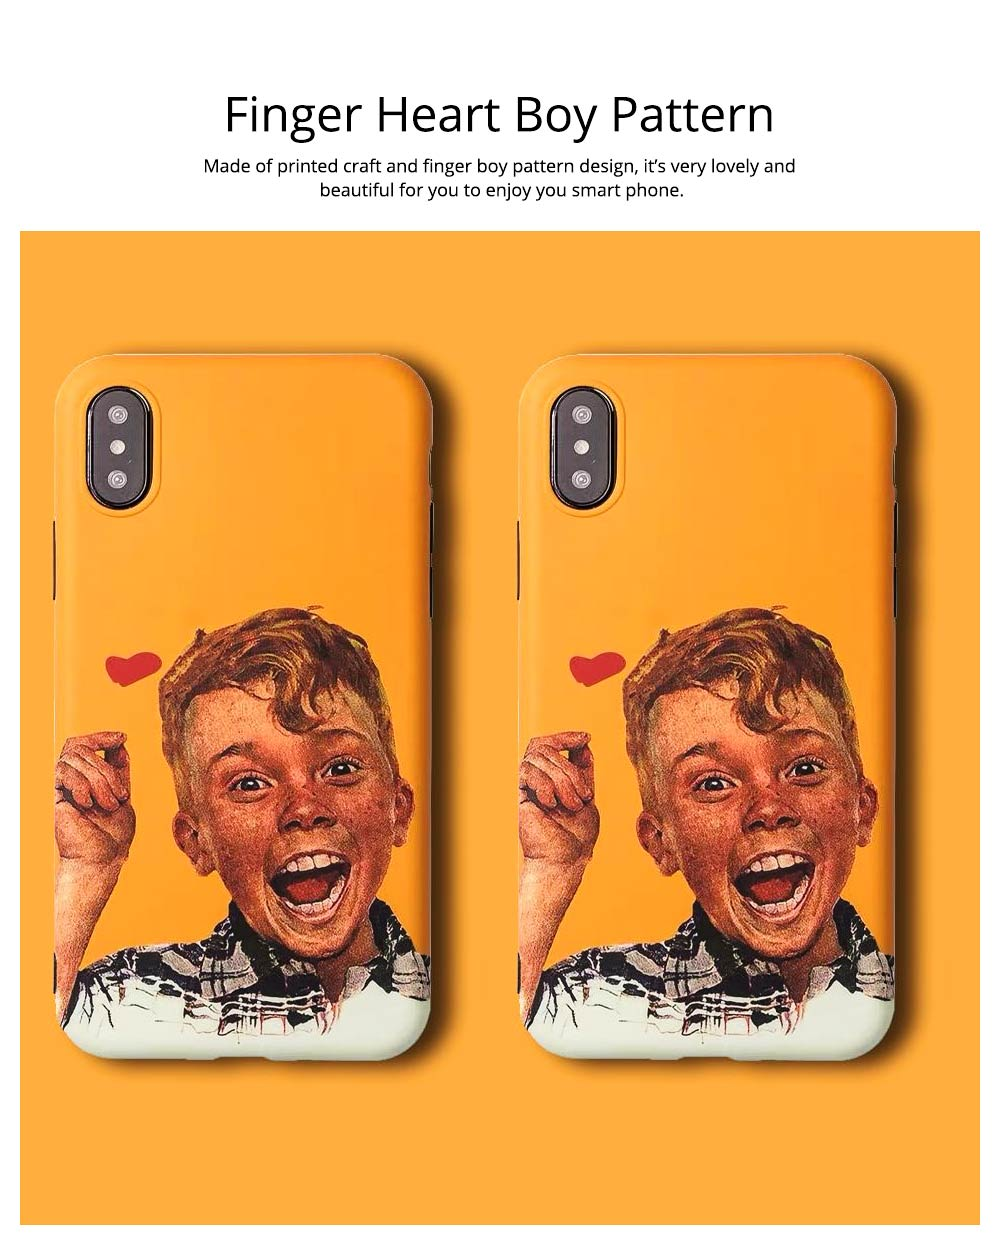 Phone Case with Finger Heart Boy Design, Cute Bumper Back Cover for iPhone 6/6s, 6p/6sp, 7p/8p, X/XS, XR Shell 8